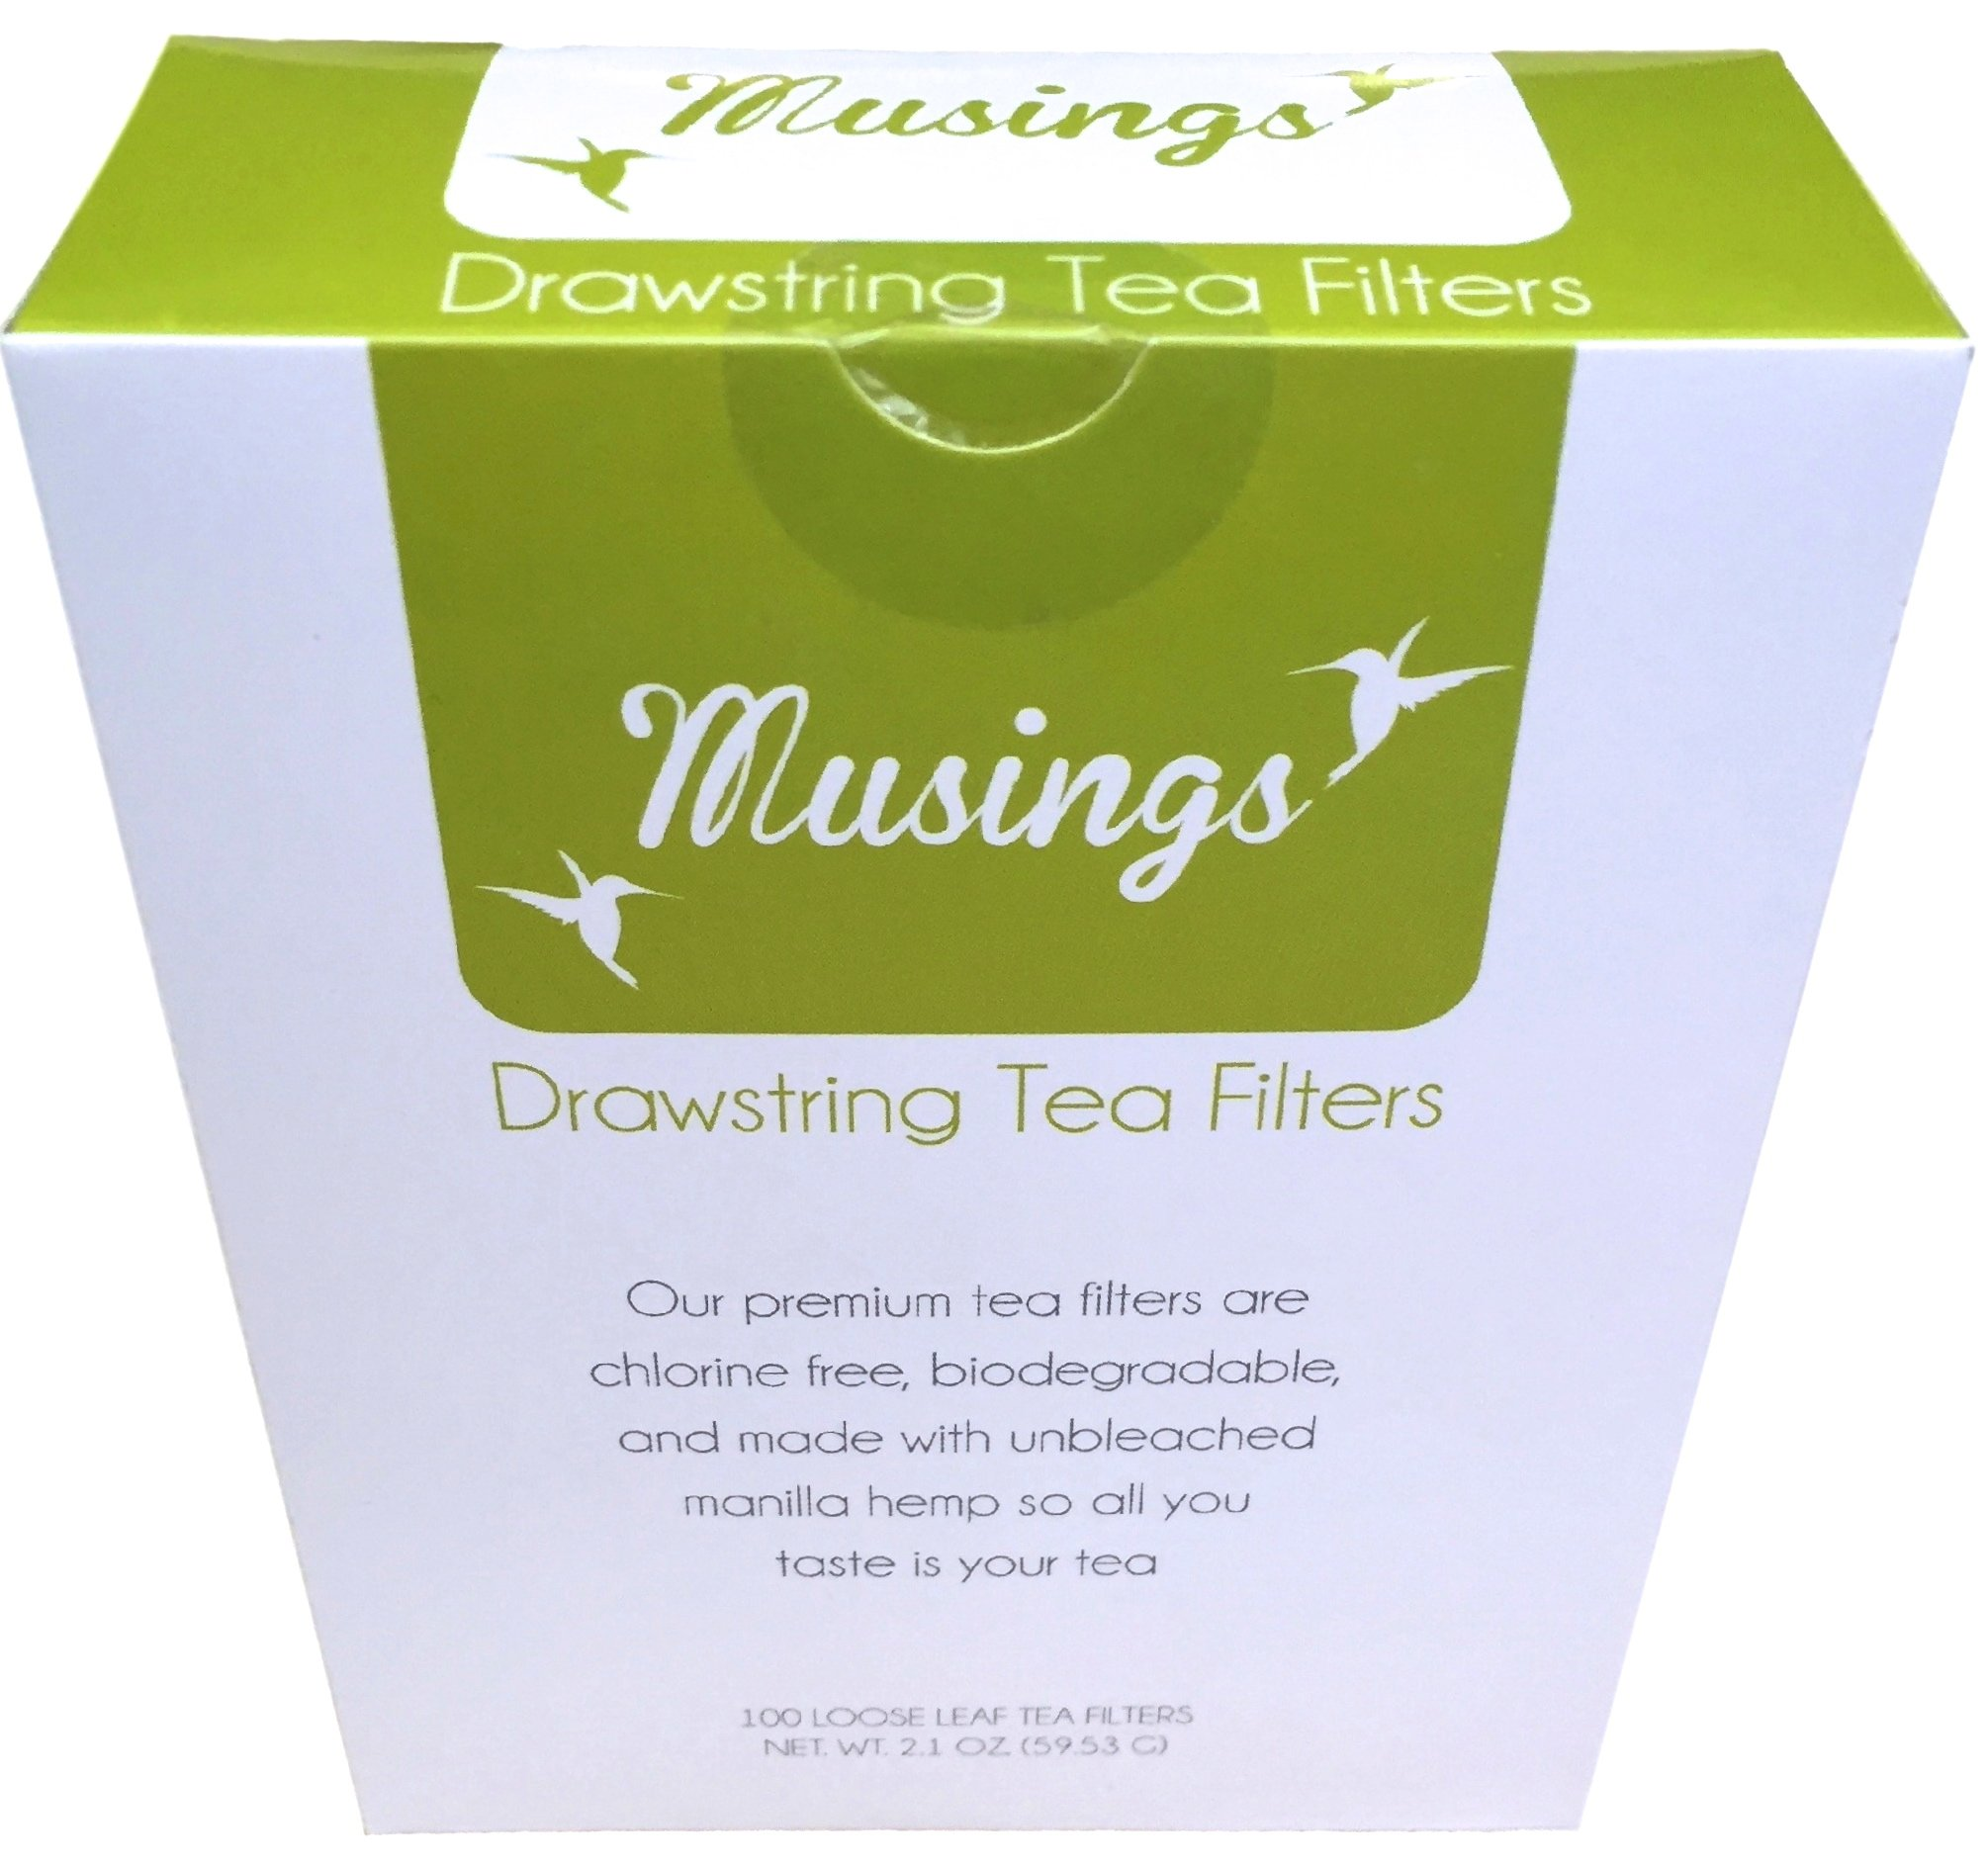 Premium Drawstring Tea Bags For Loose Leaf, Disposable Filters, Non GMO, Strong, No Mess Tag, All Natural Infuser, Compostable, Unbleached Manilla Hemp Paper